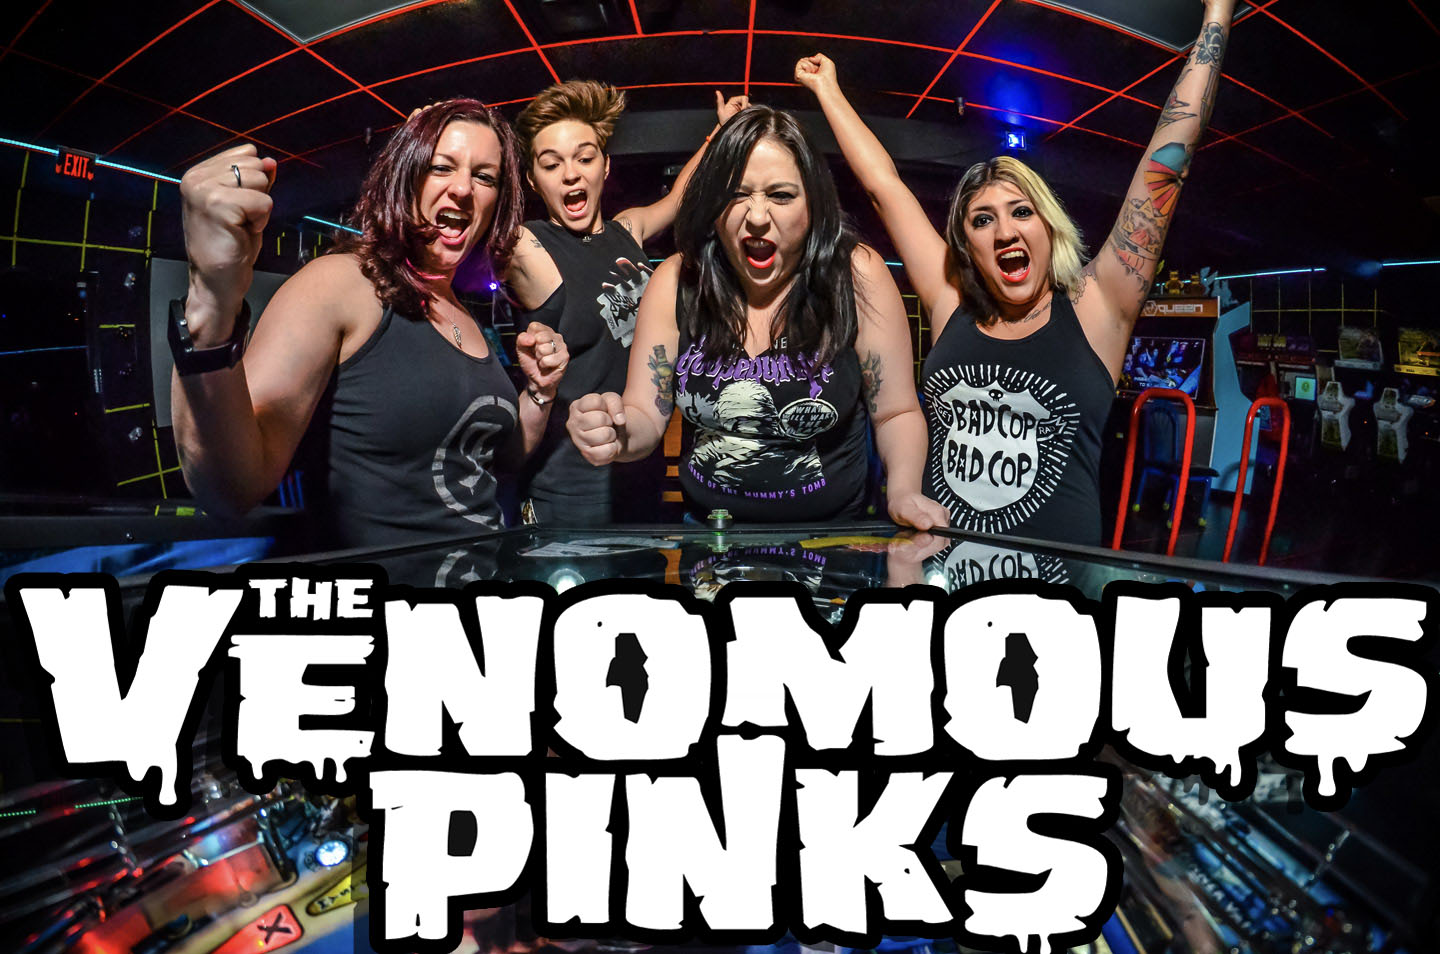 The Venomous Pinks